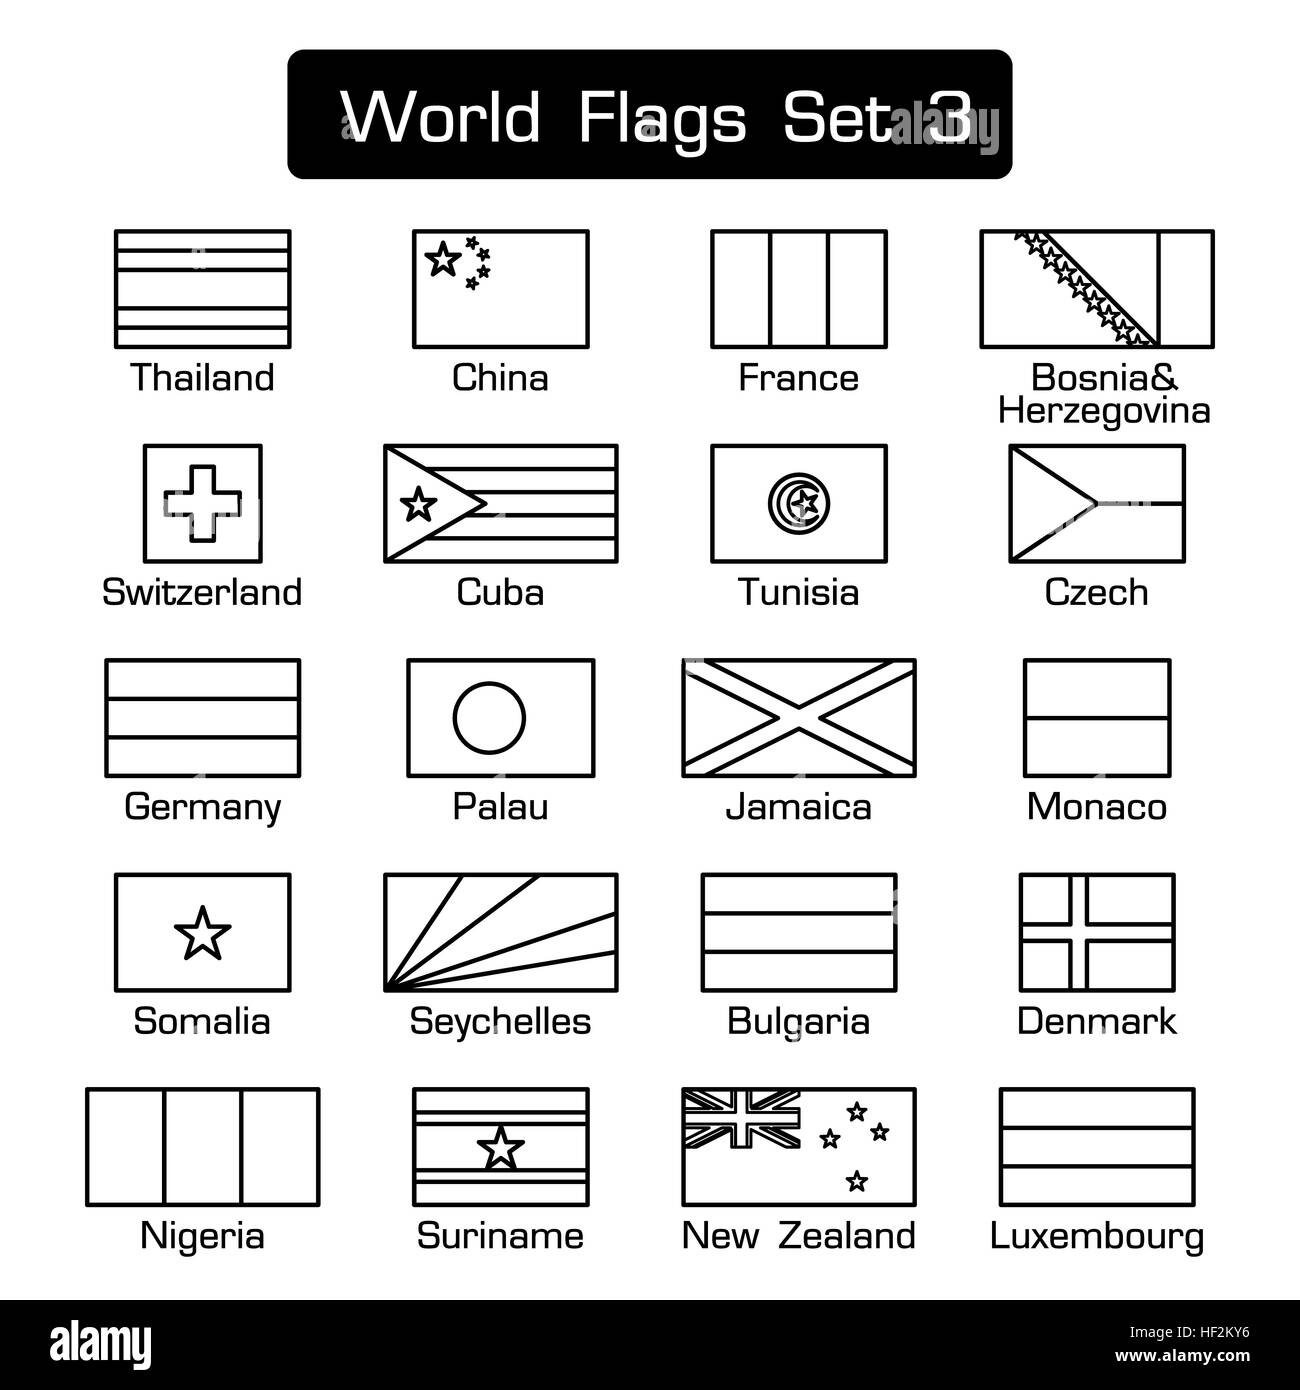 World flags set 3 . simple style and flat design . thick outline . - Stock Image